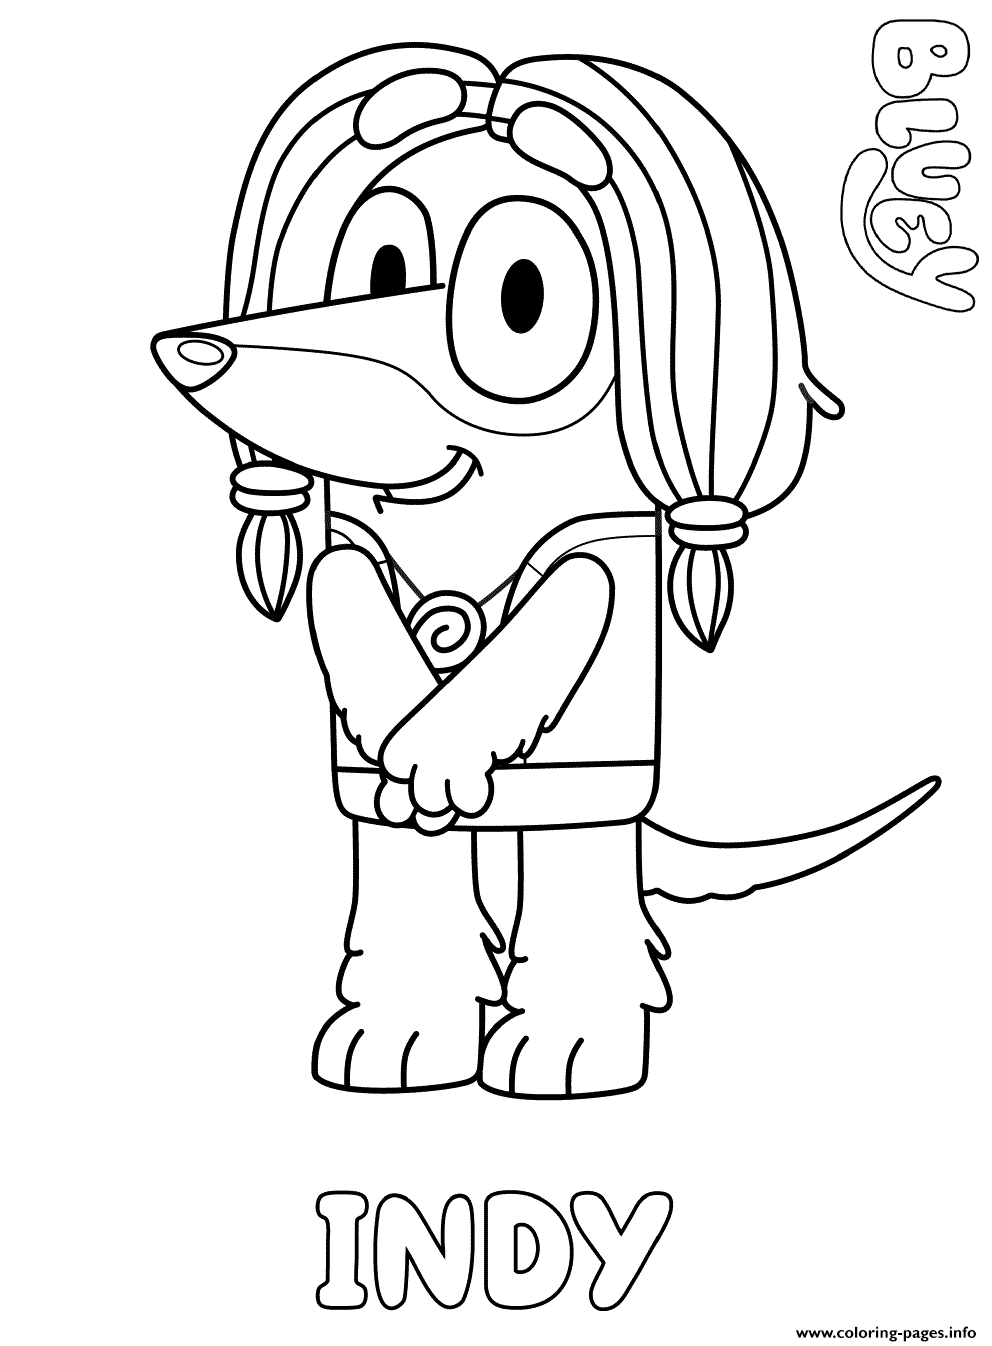 Print Afghan Hound Indy Coloring Pages Kids Party Printables Coloring Pages Kids Colouring Printables